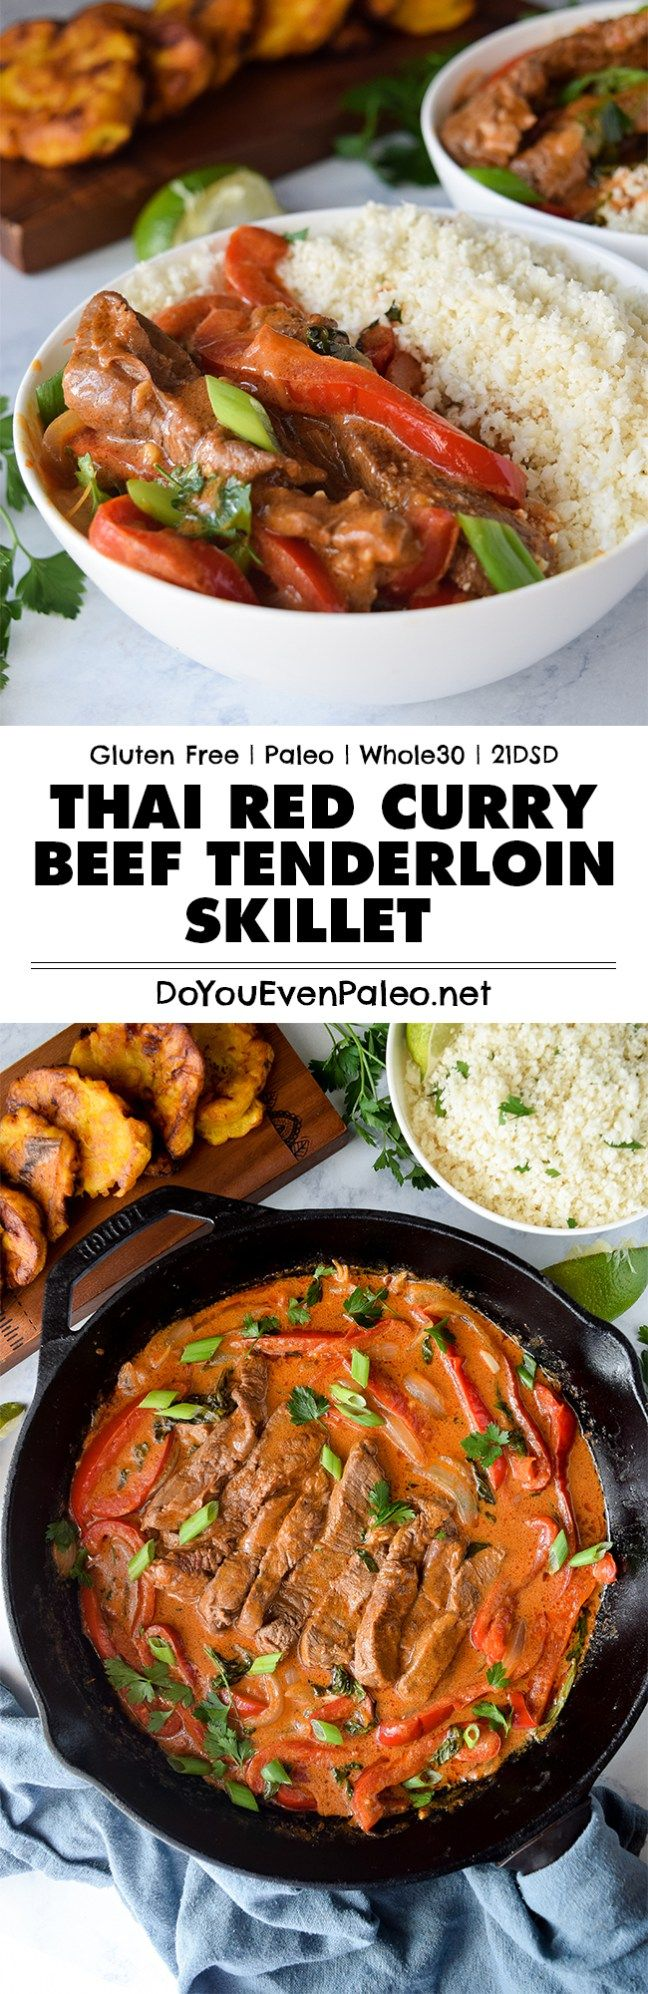 This quick Thai Red Curry Beef Tenderloin Skillet makes a spicy little weeknight dinner. Plus, it's gluten free, paleo, Whole30, and 21DSD friendly!   DoYouEvenPaleo.net